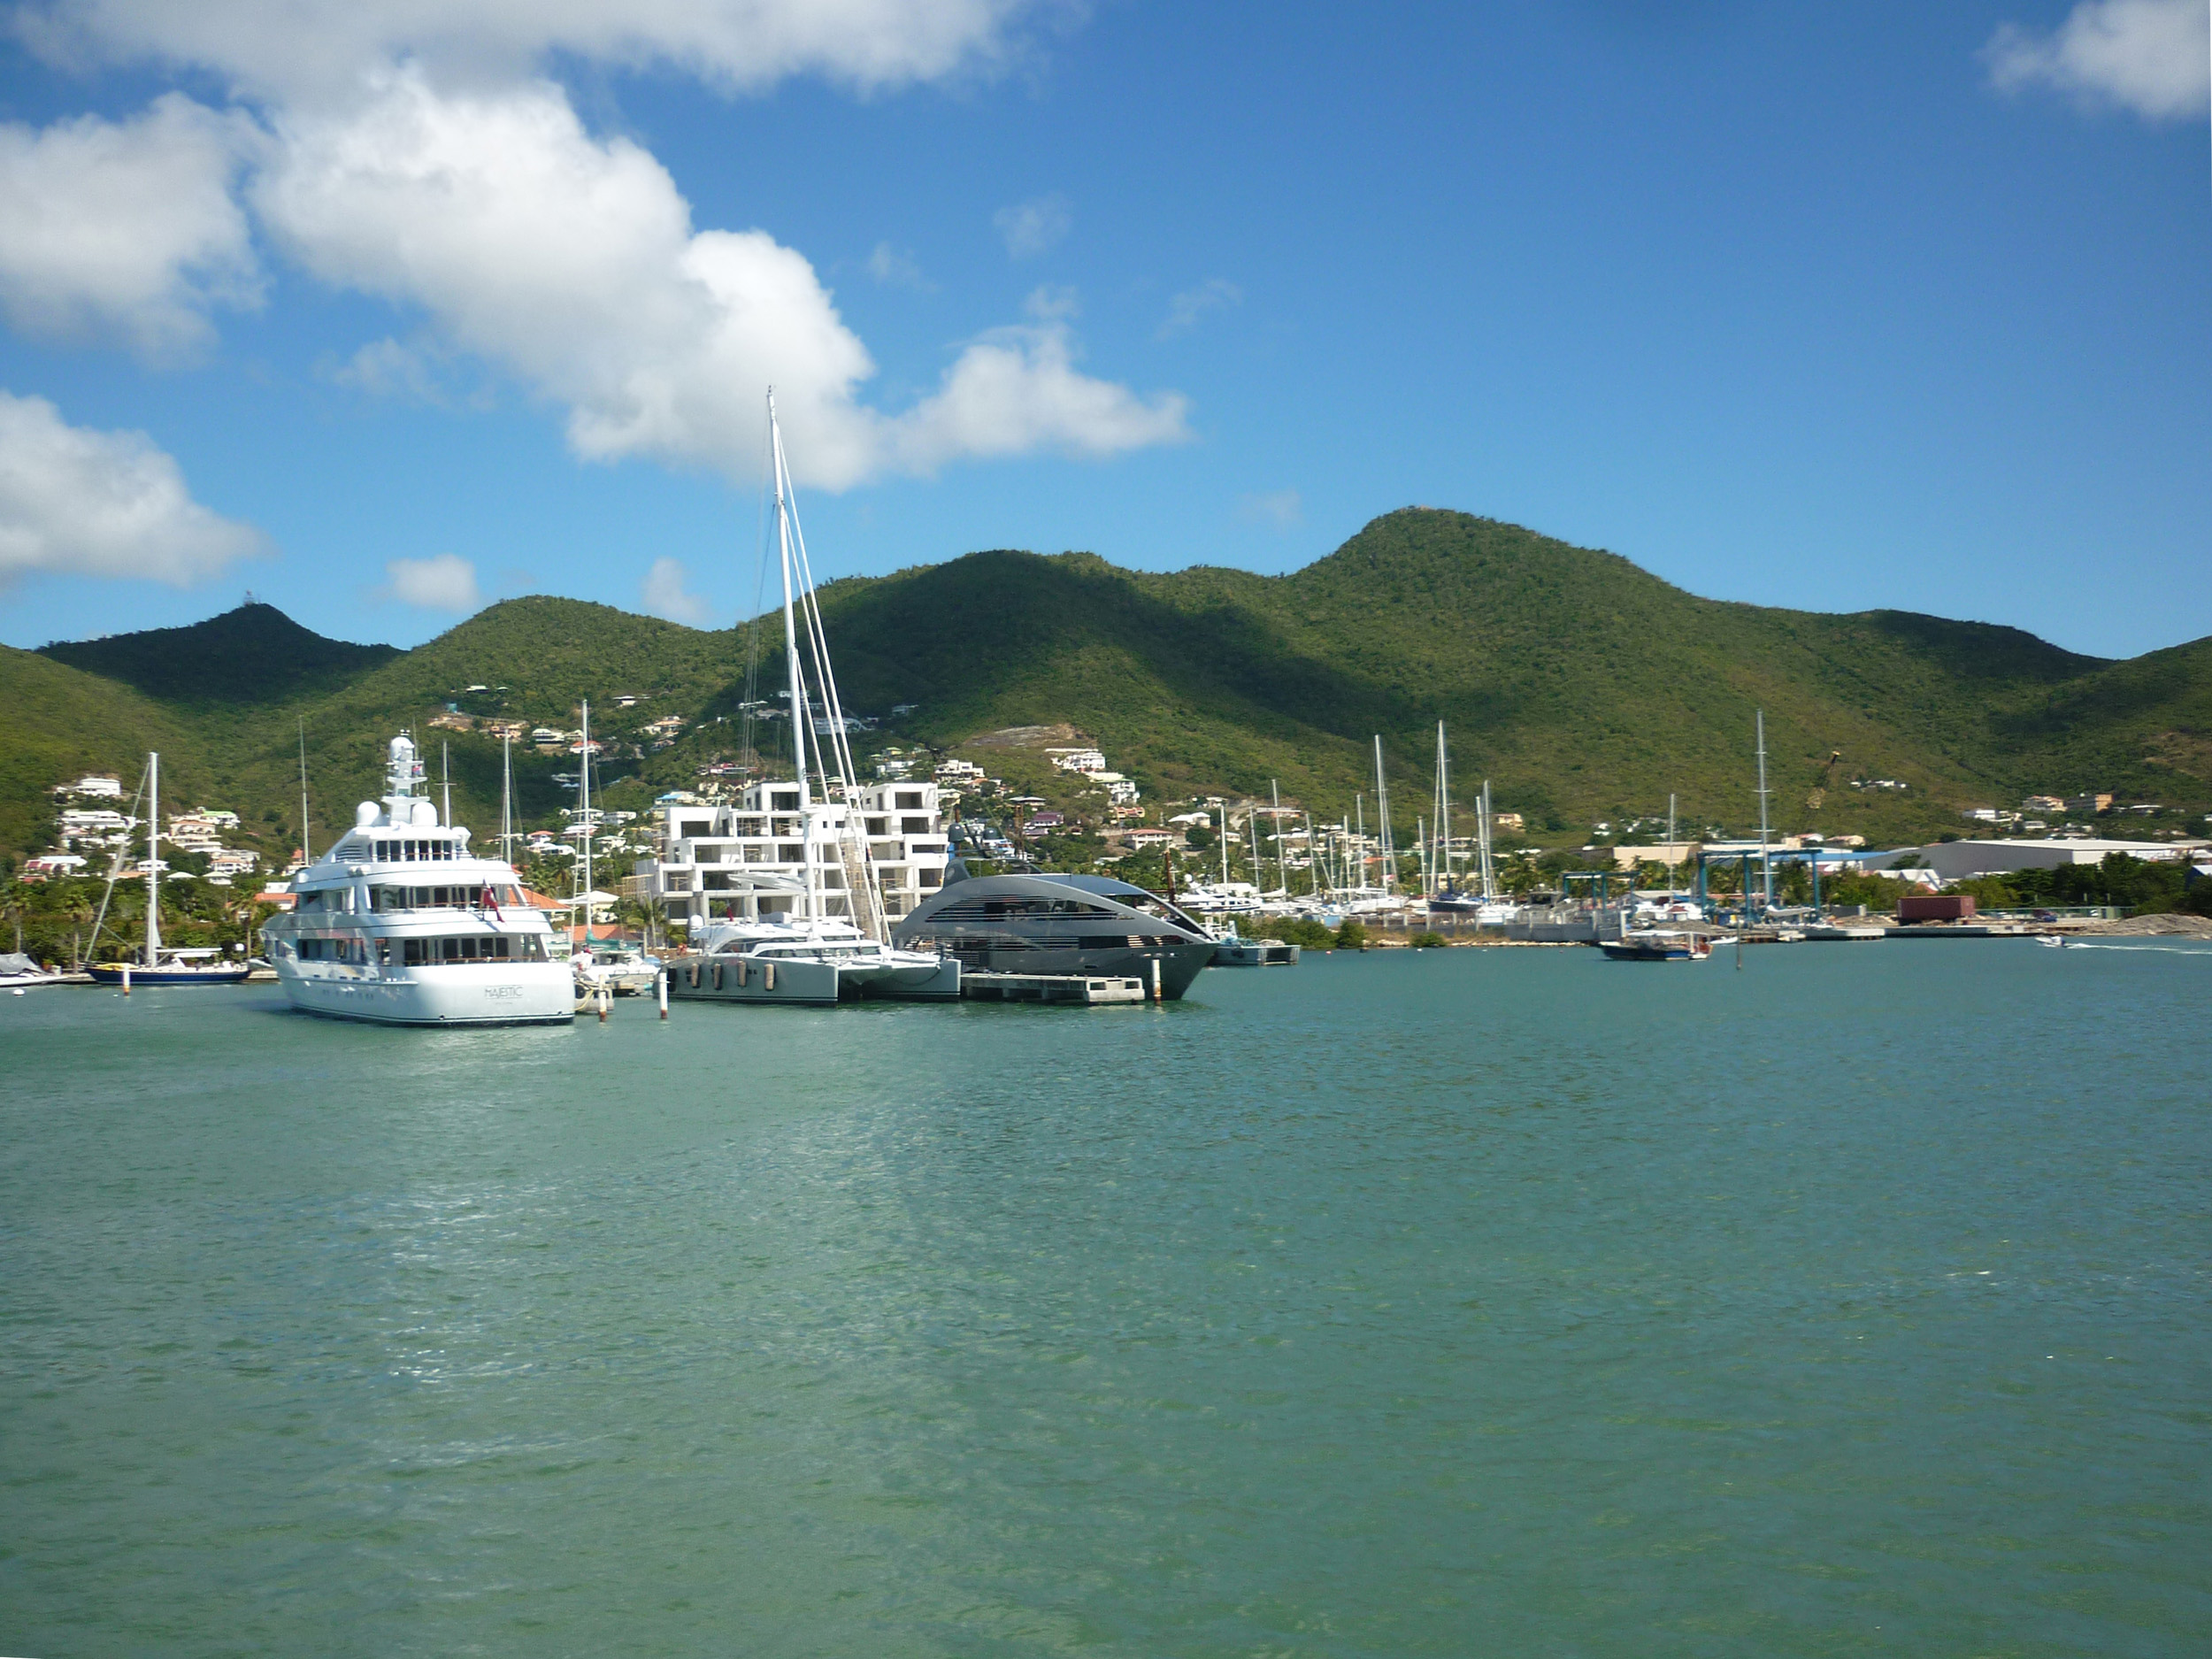 a line of expensive motor yachts, docked at the island of st maarten